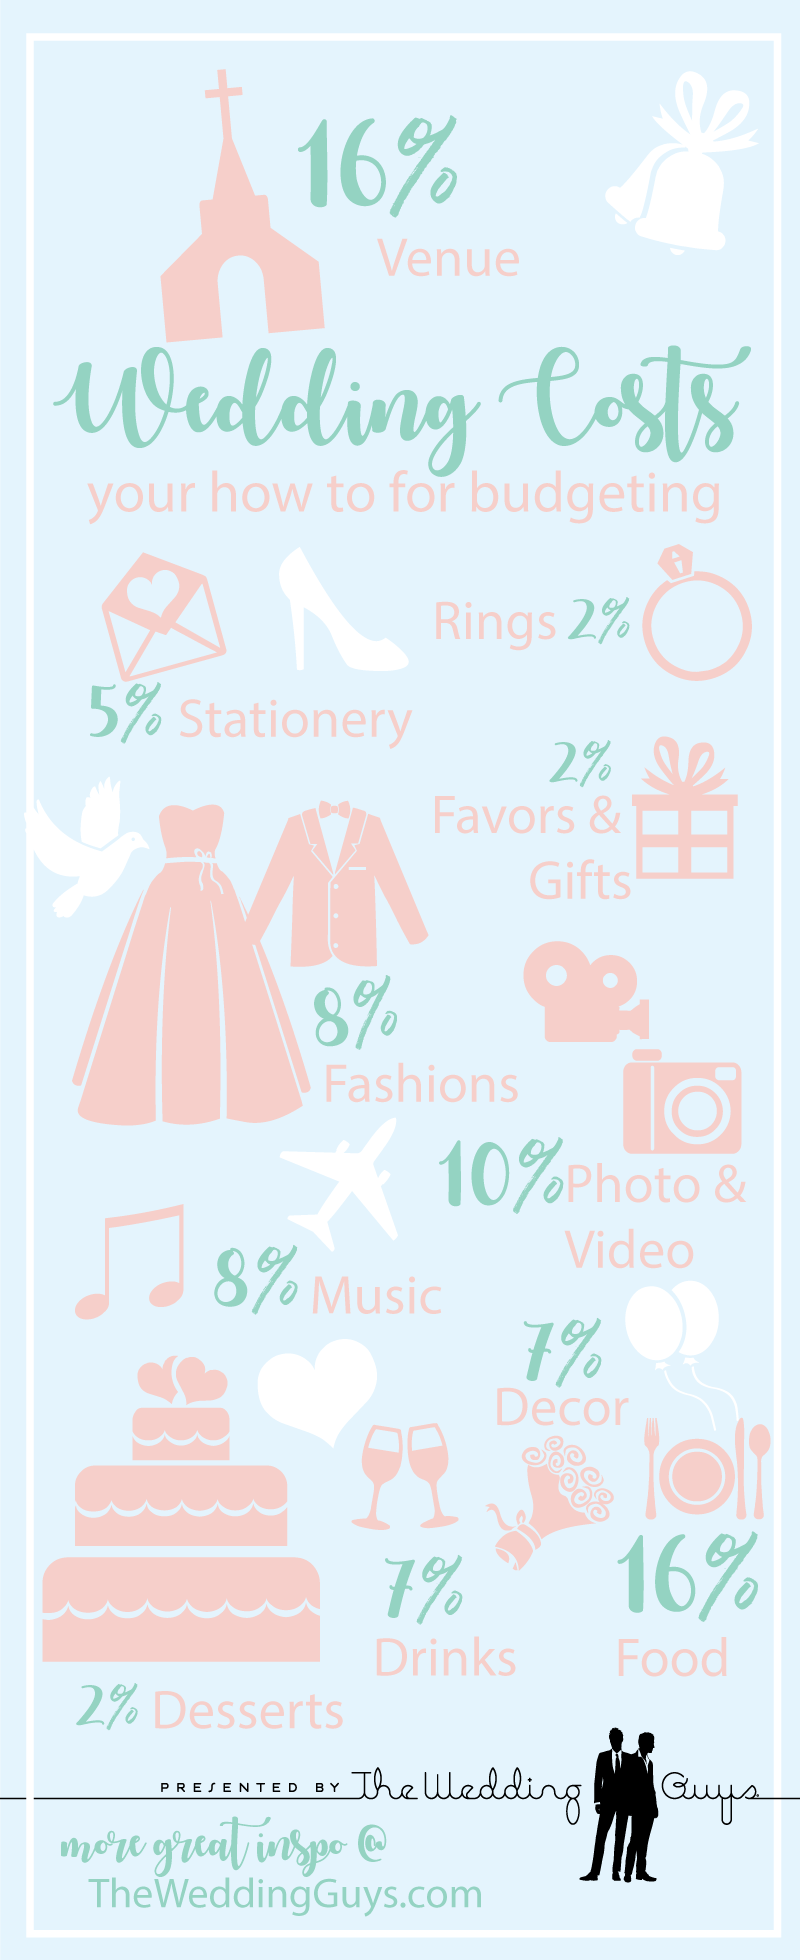 Wedding budget infographic for new year's resolutions for couples